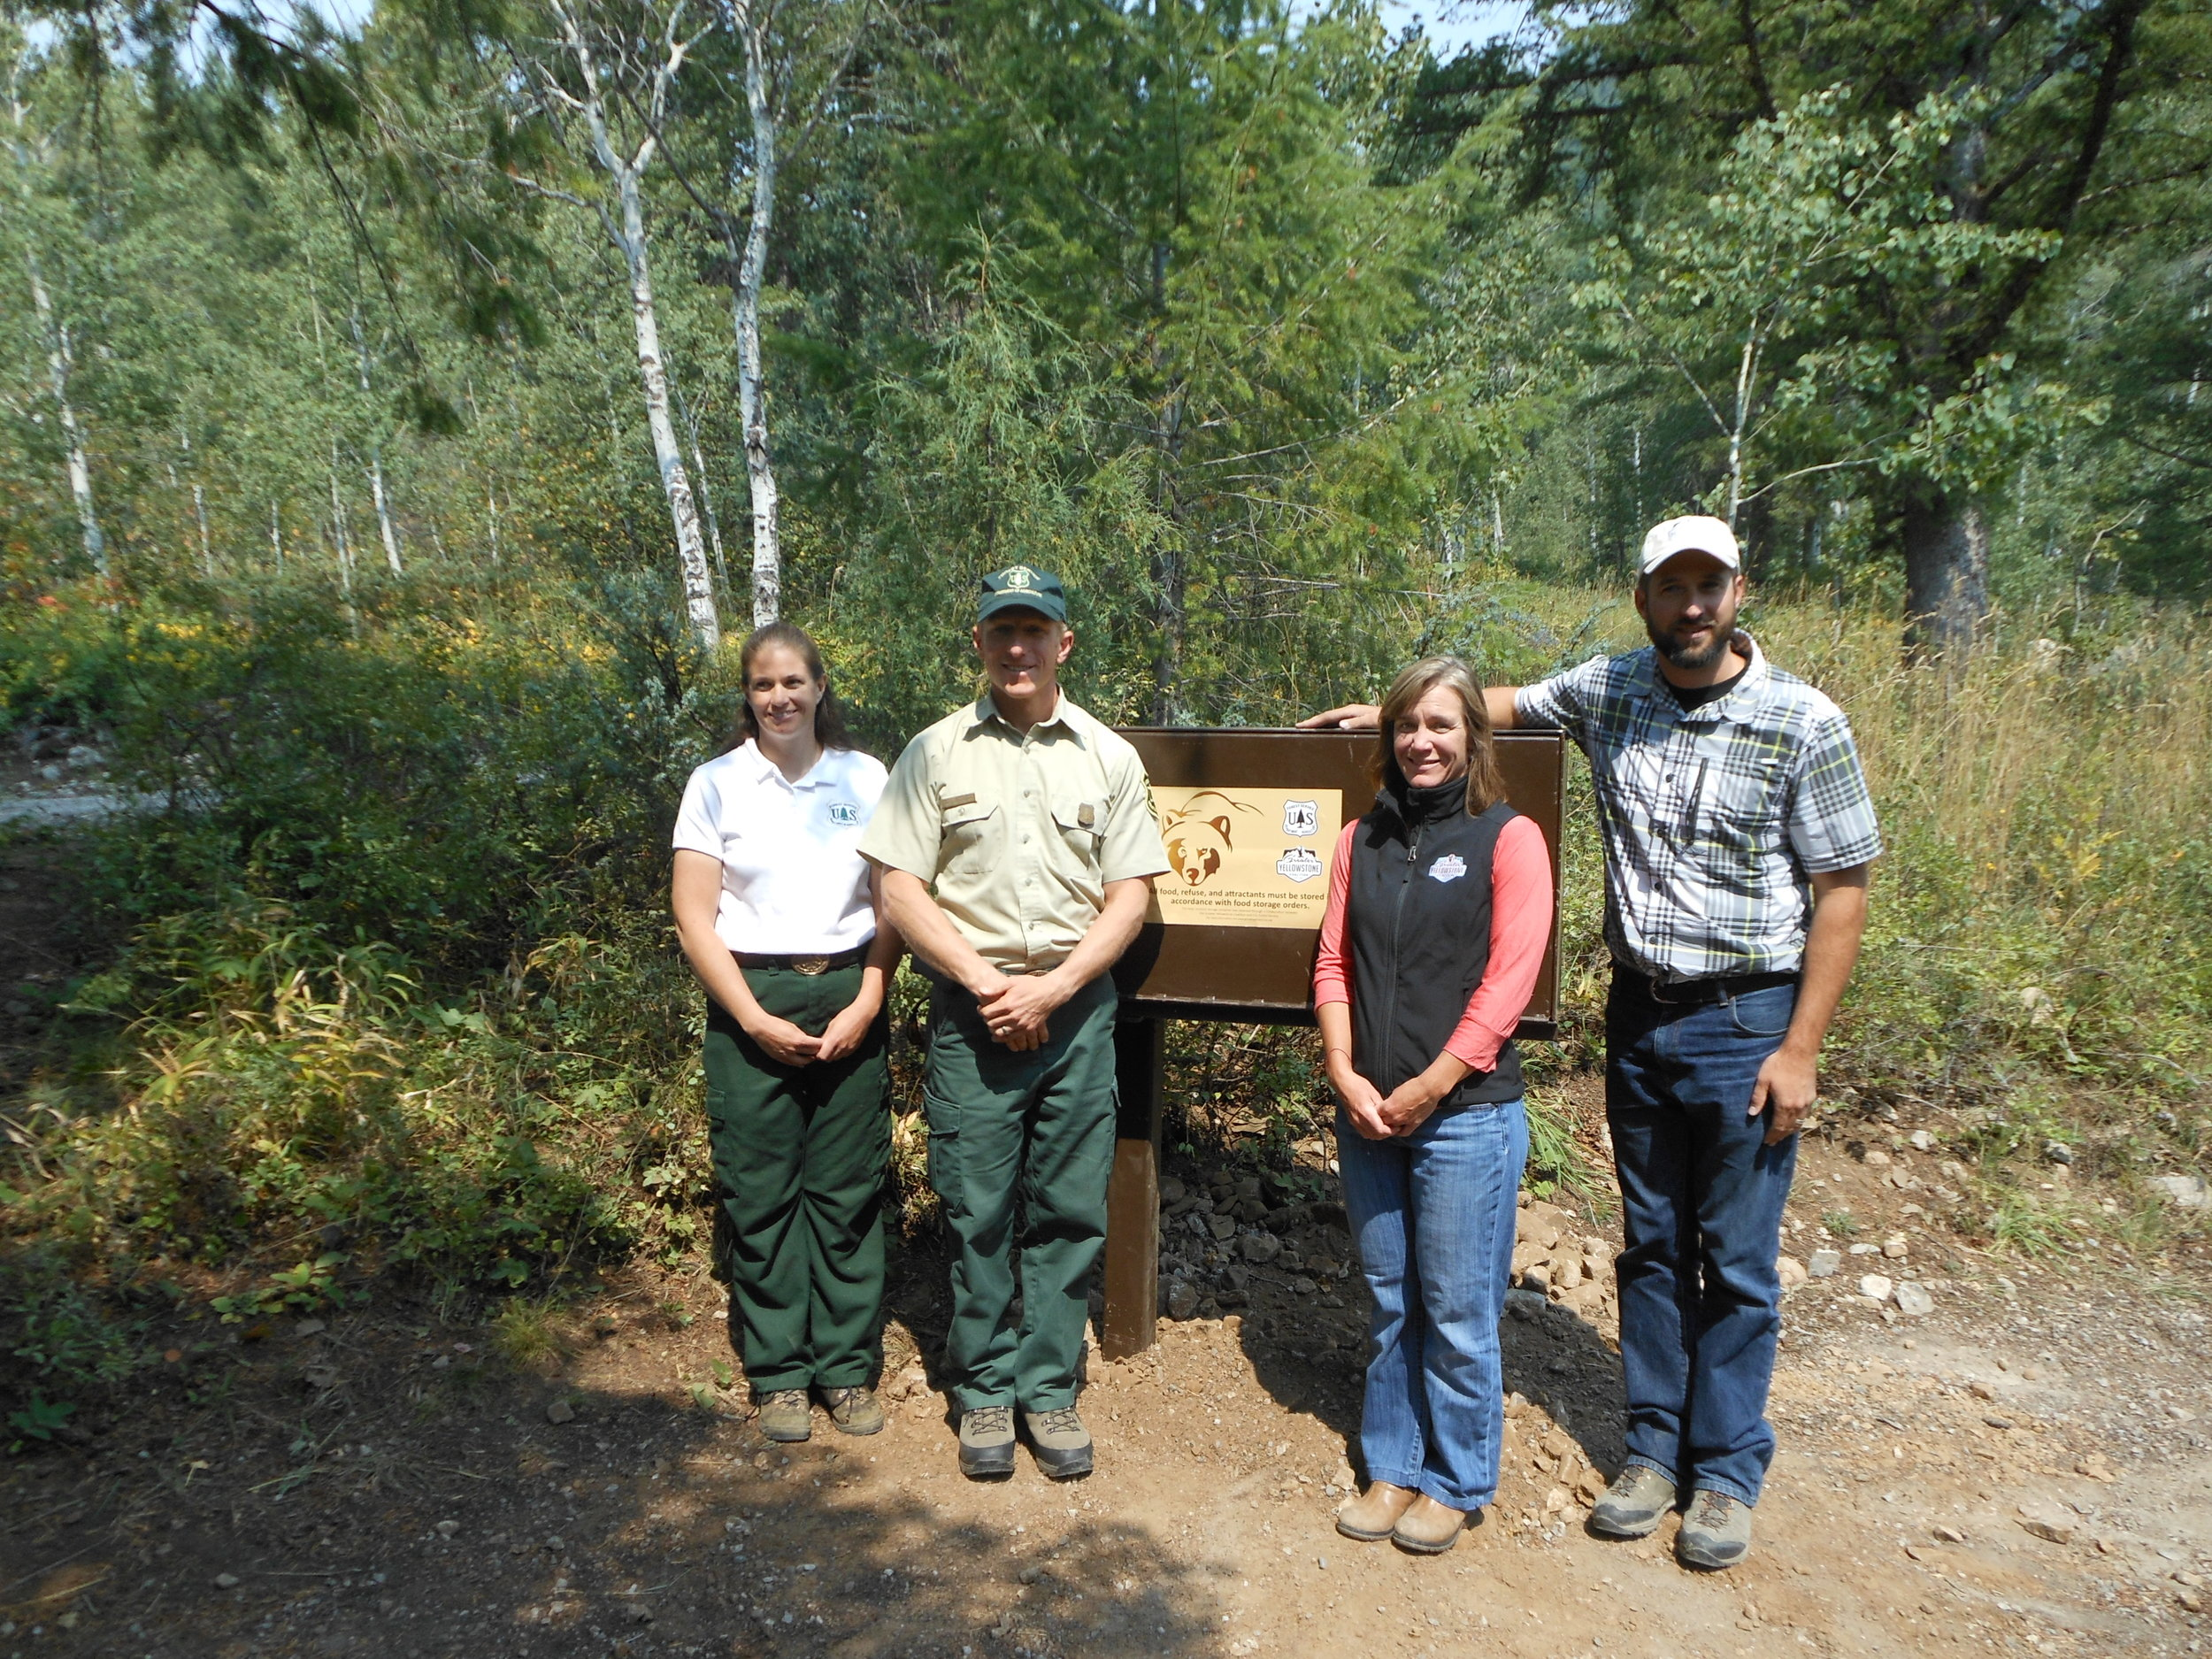 Idaho Conservation Coordinator Kathy Rinaldi (2nd from right), Wildlife Program Coordinator Chris Colligan (far right), and two Forest Service employees with a recently installed food storage container at a campground near Palisades, Idaho. (Photo GYC.)